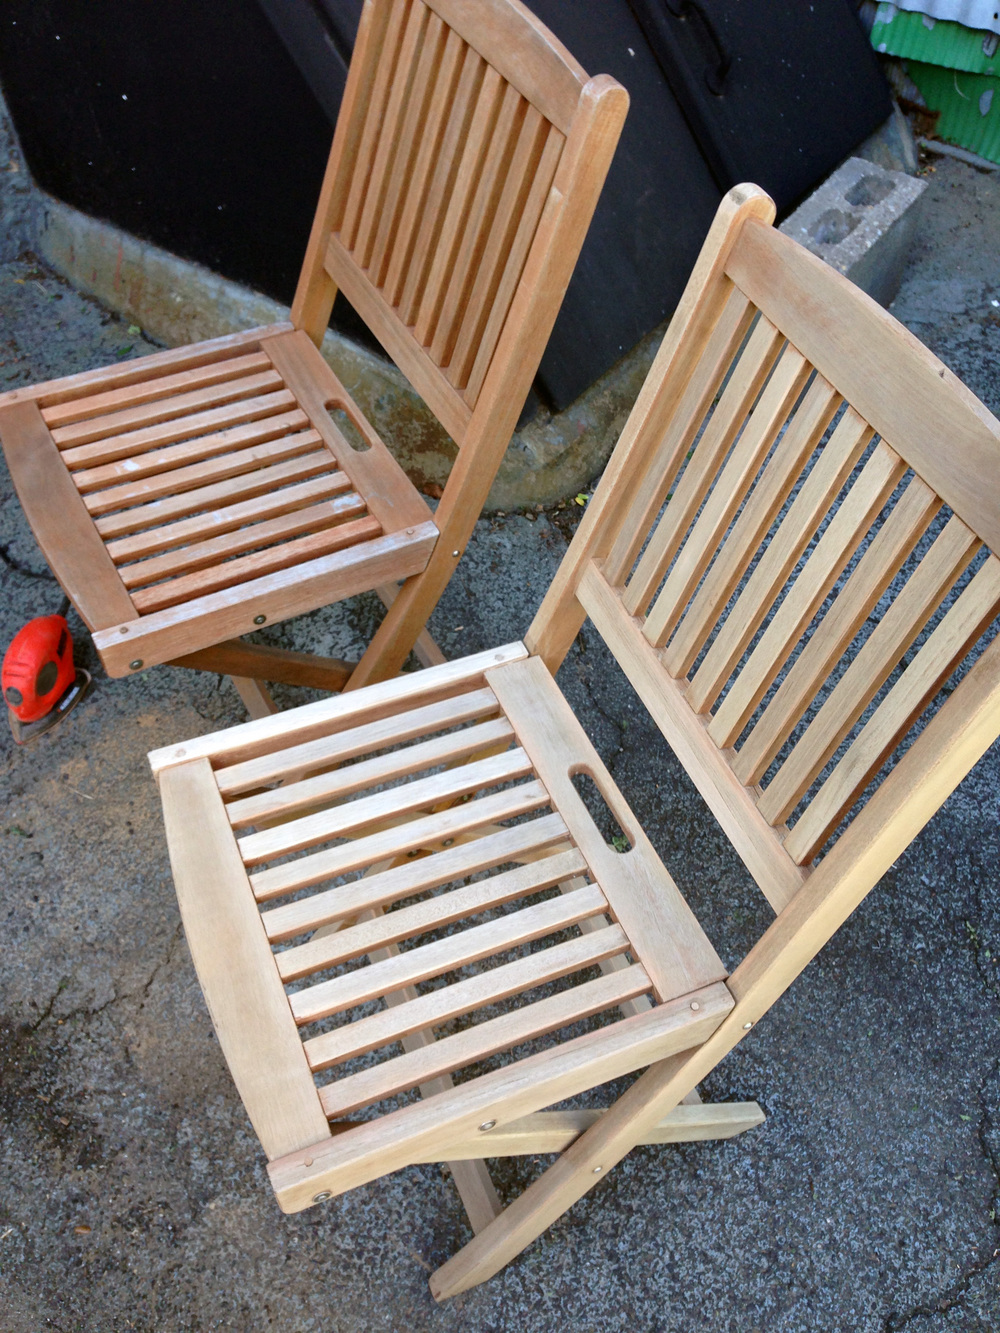 {sanding complete on the bottom chair shown}